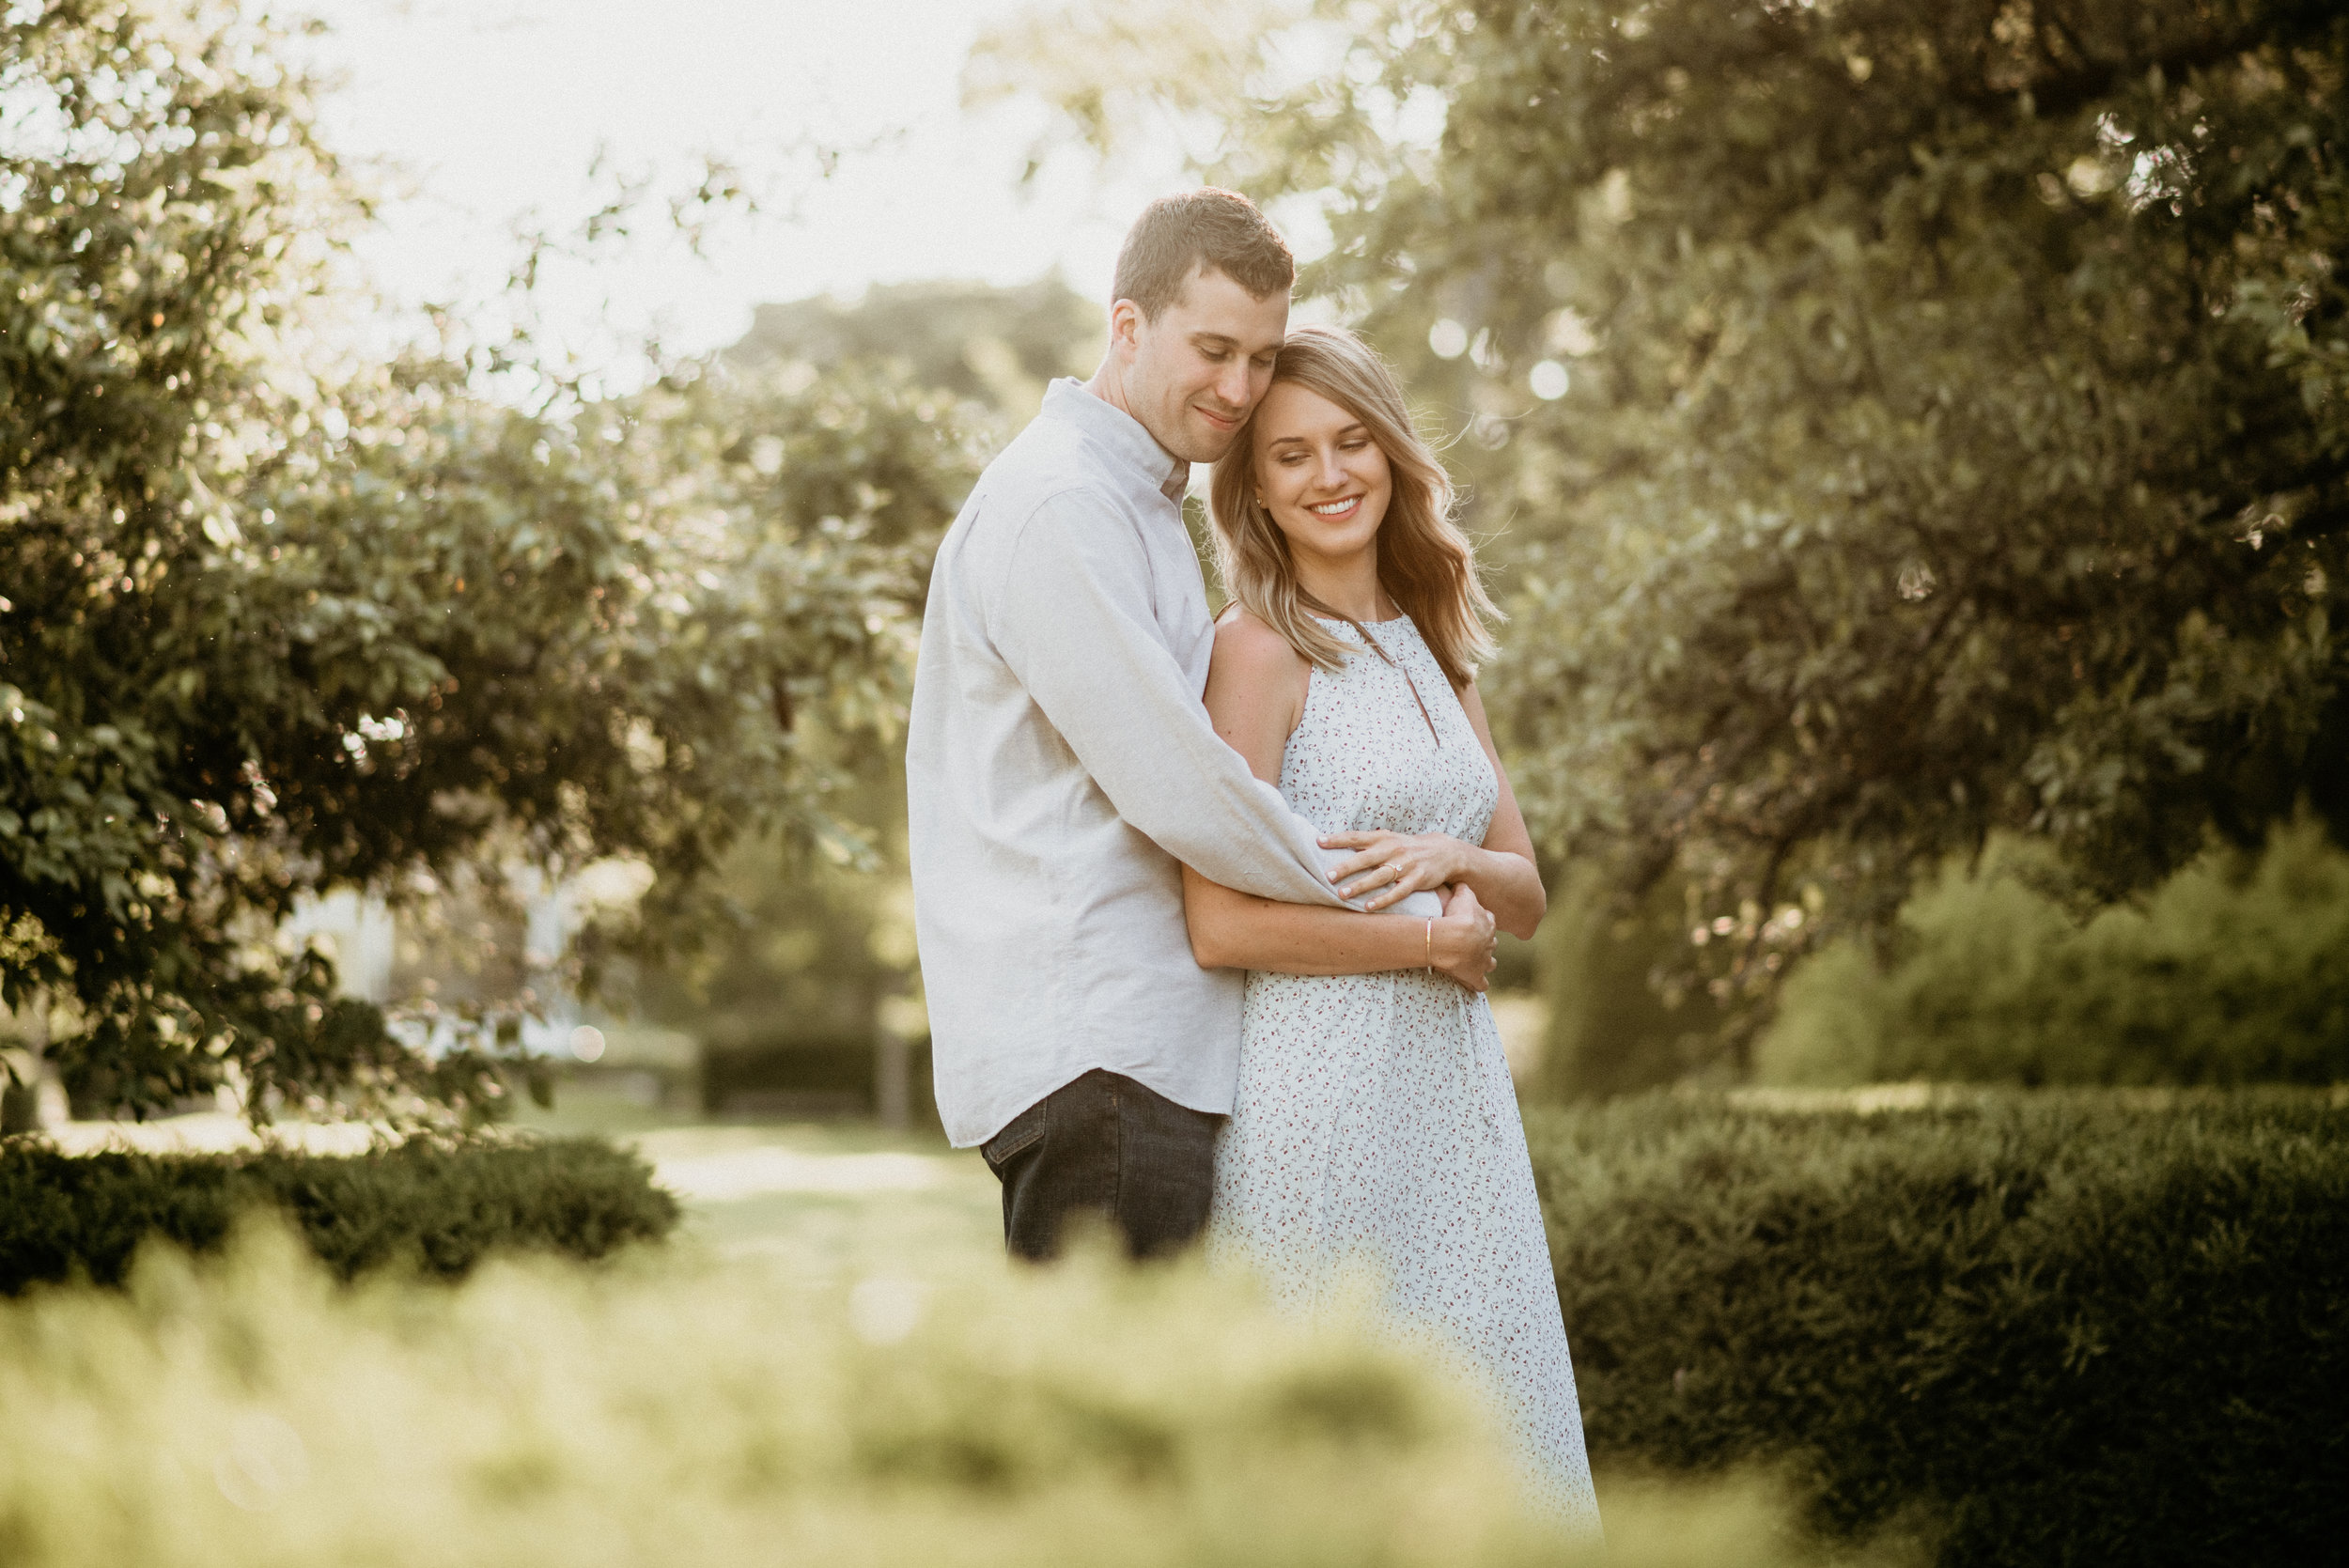 Natalie and Jay - Summer Engagement | The Morton Arboretum | Lisle, IL